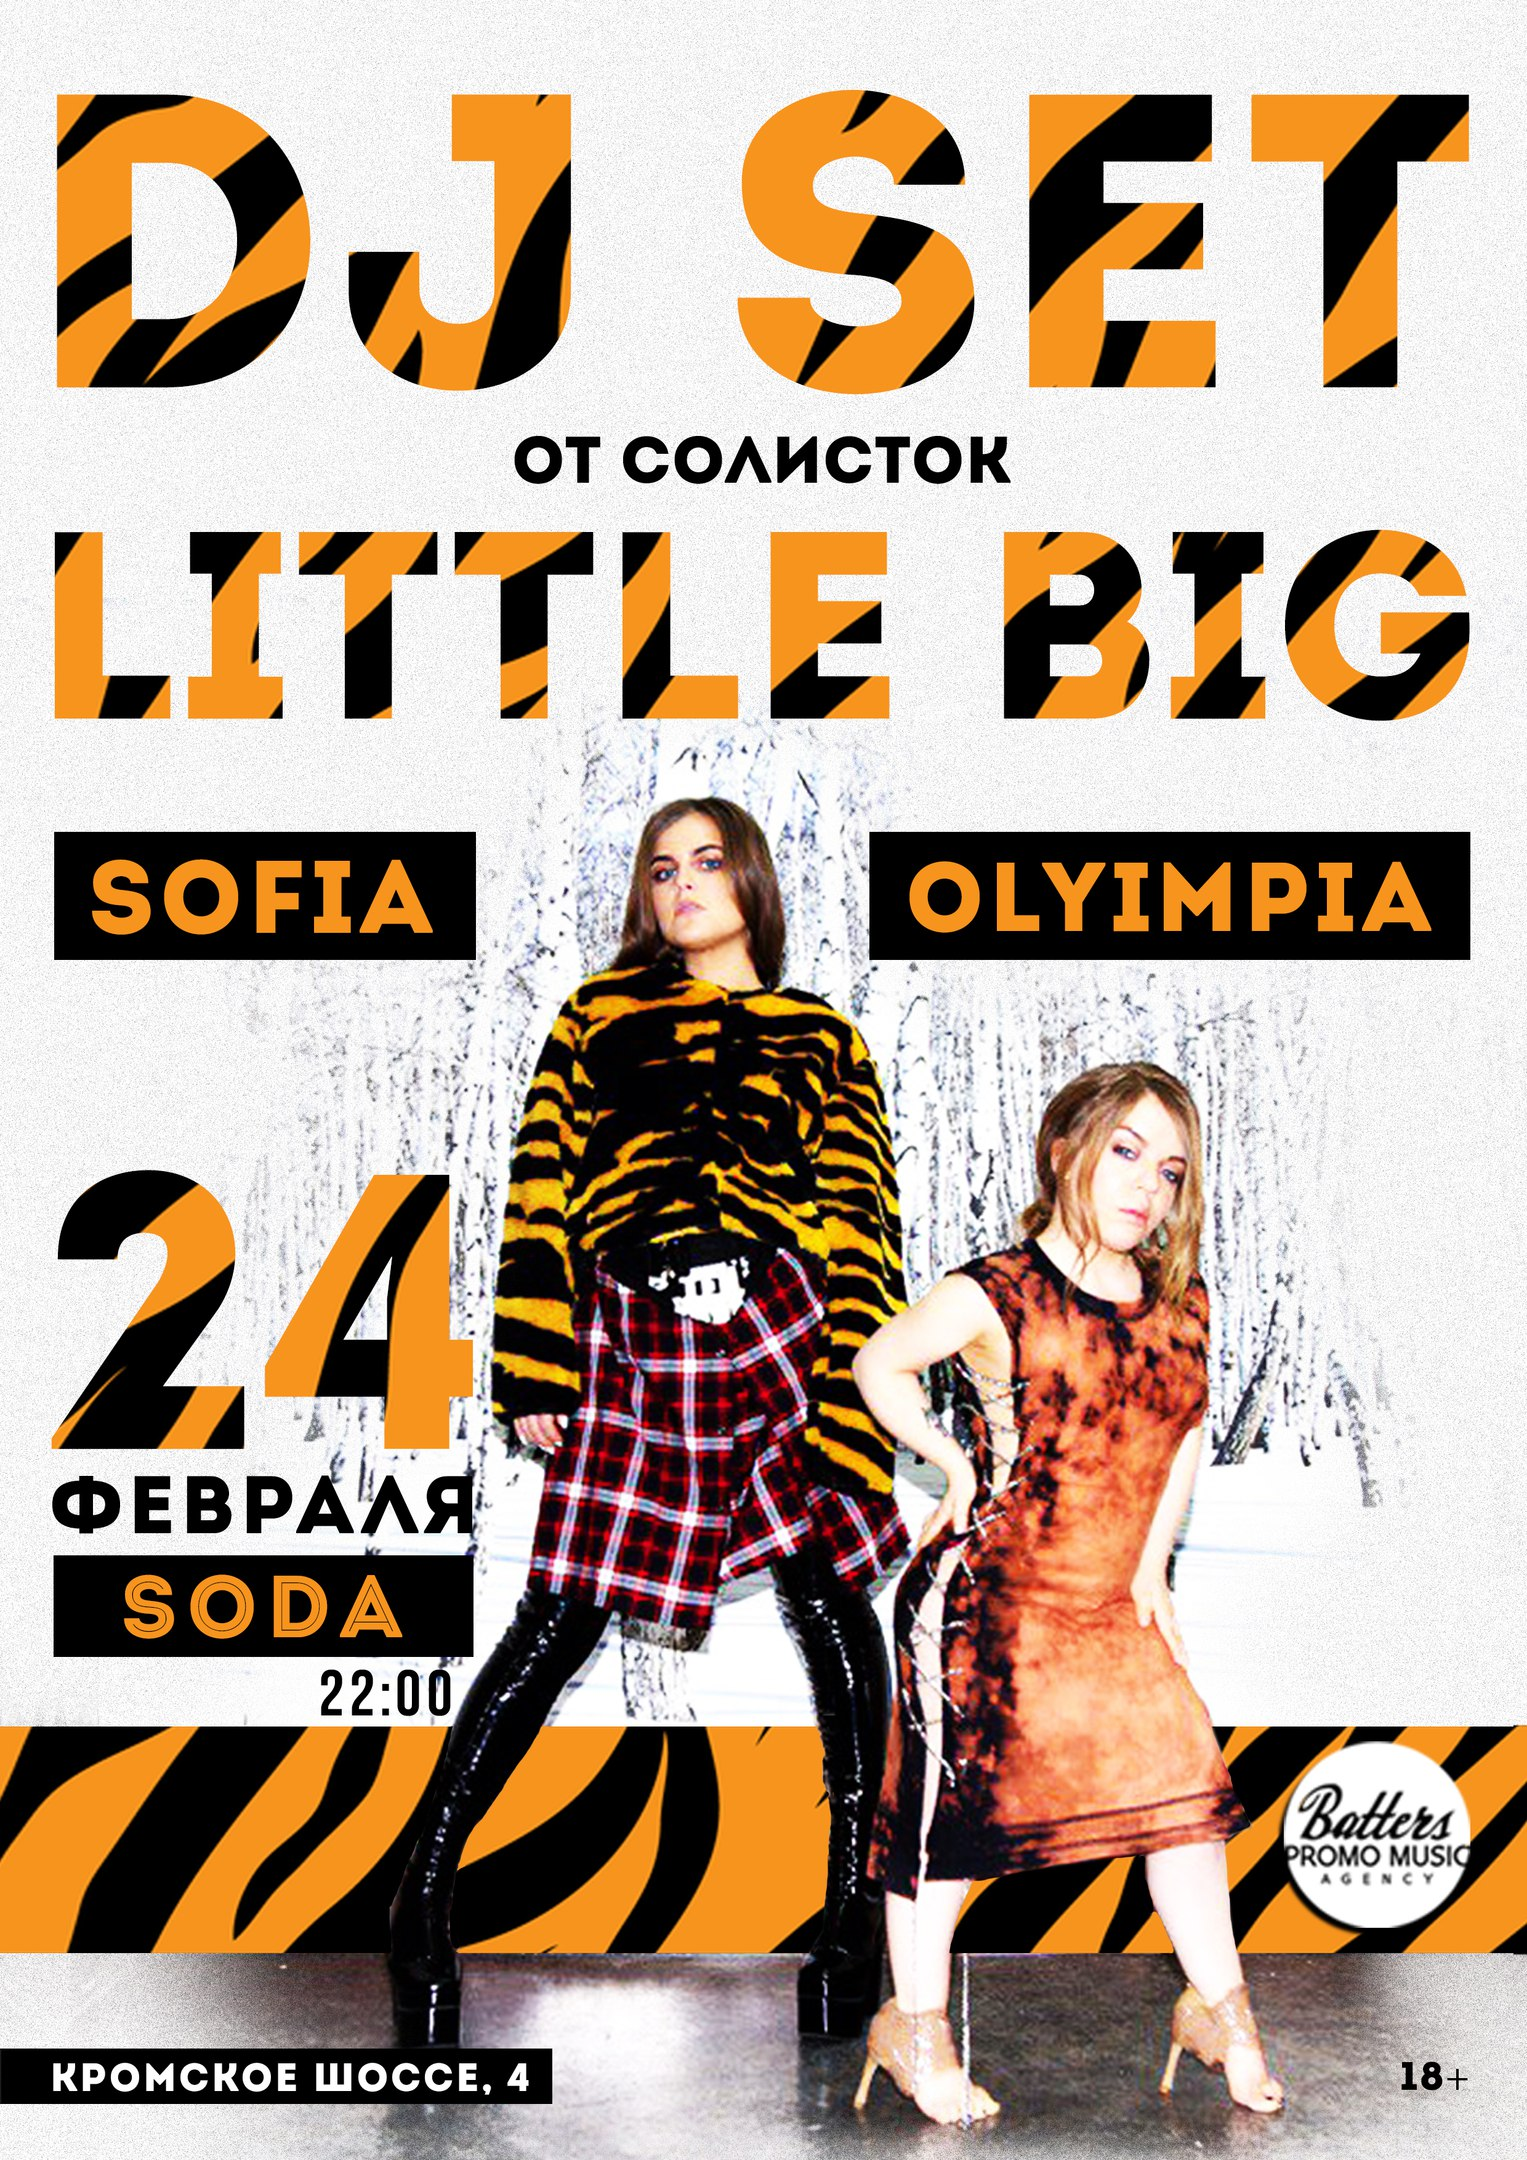 OLYMPYIA and SOFIA (LITTLE BIG) Dj Set